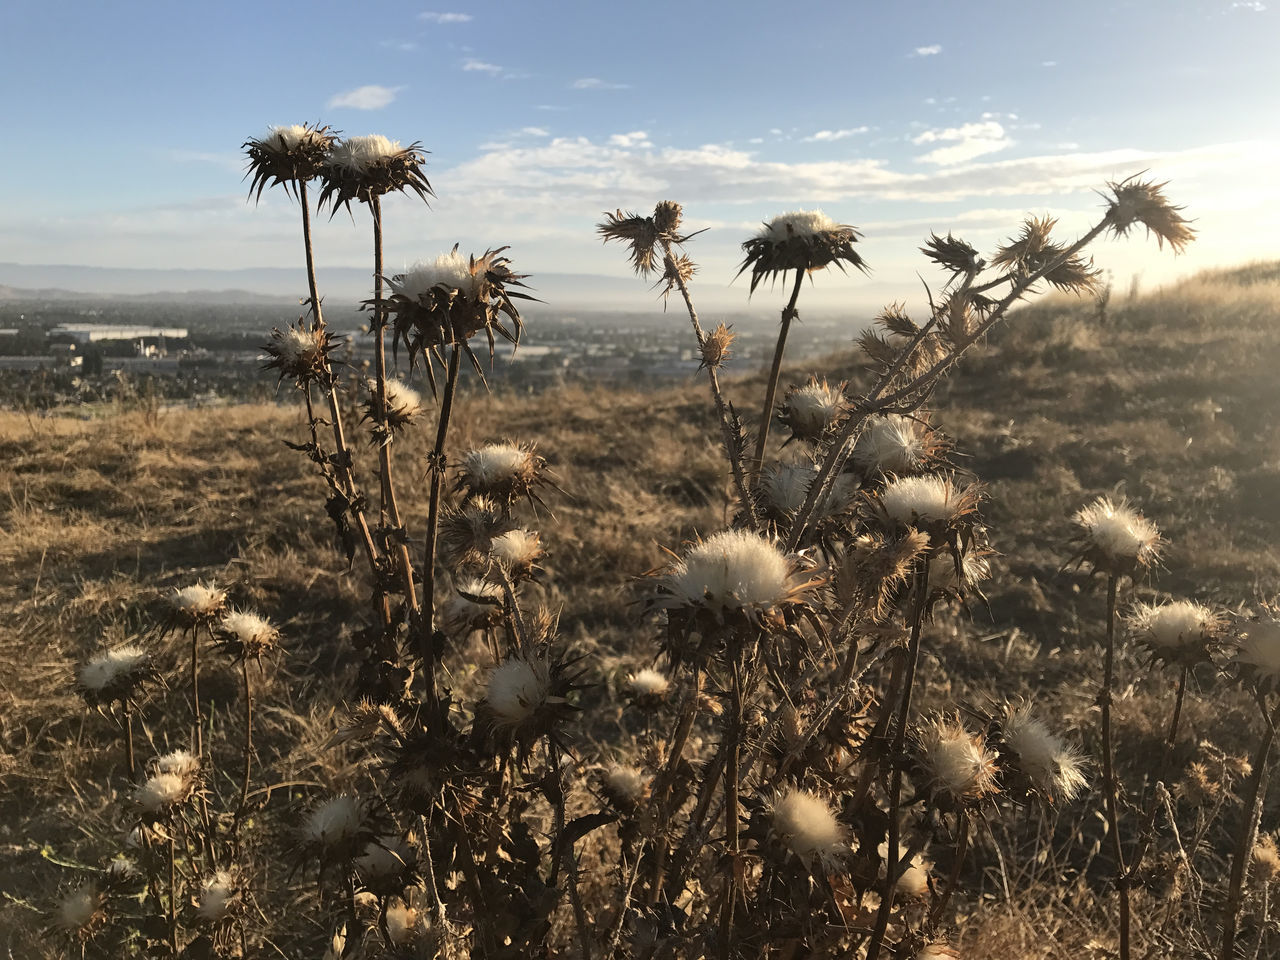 nature, growth, plant, uncultivated, flower, field, tranquility, beauty in nature, no people, outdoors, tranquil scene, sky, fragility, landscape, day, thistle, close-up, flower head